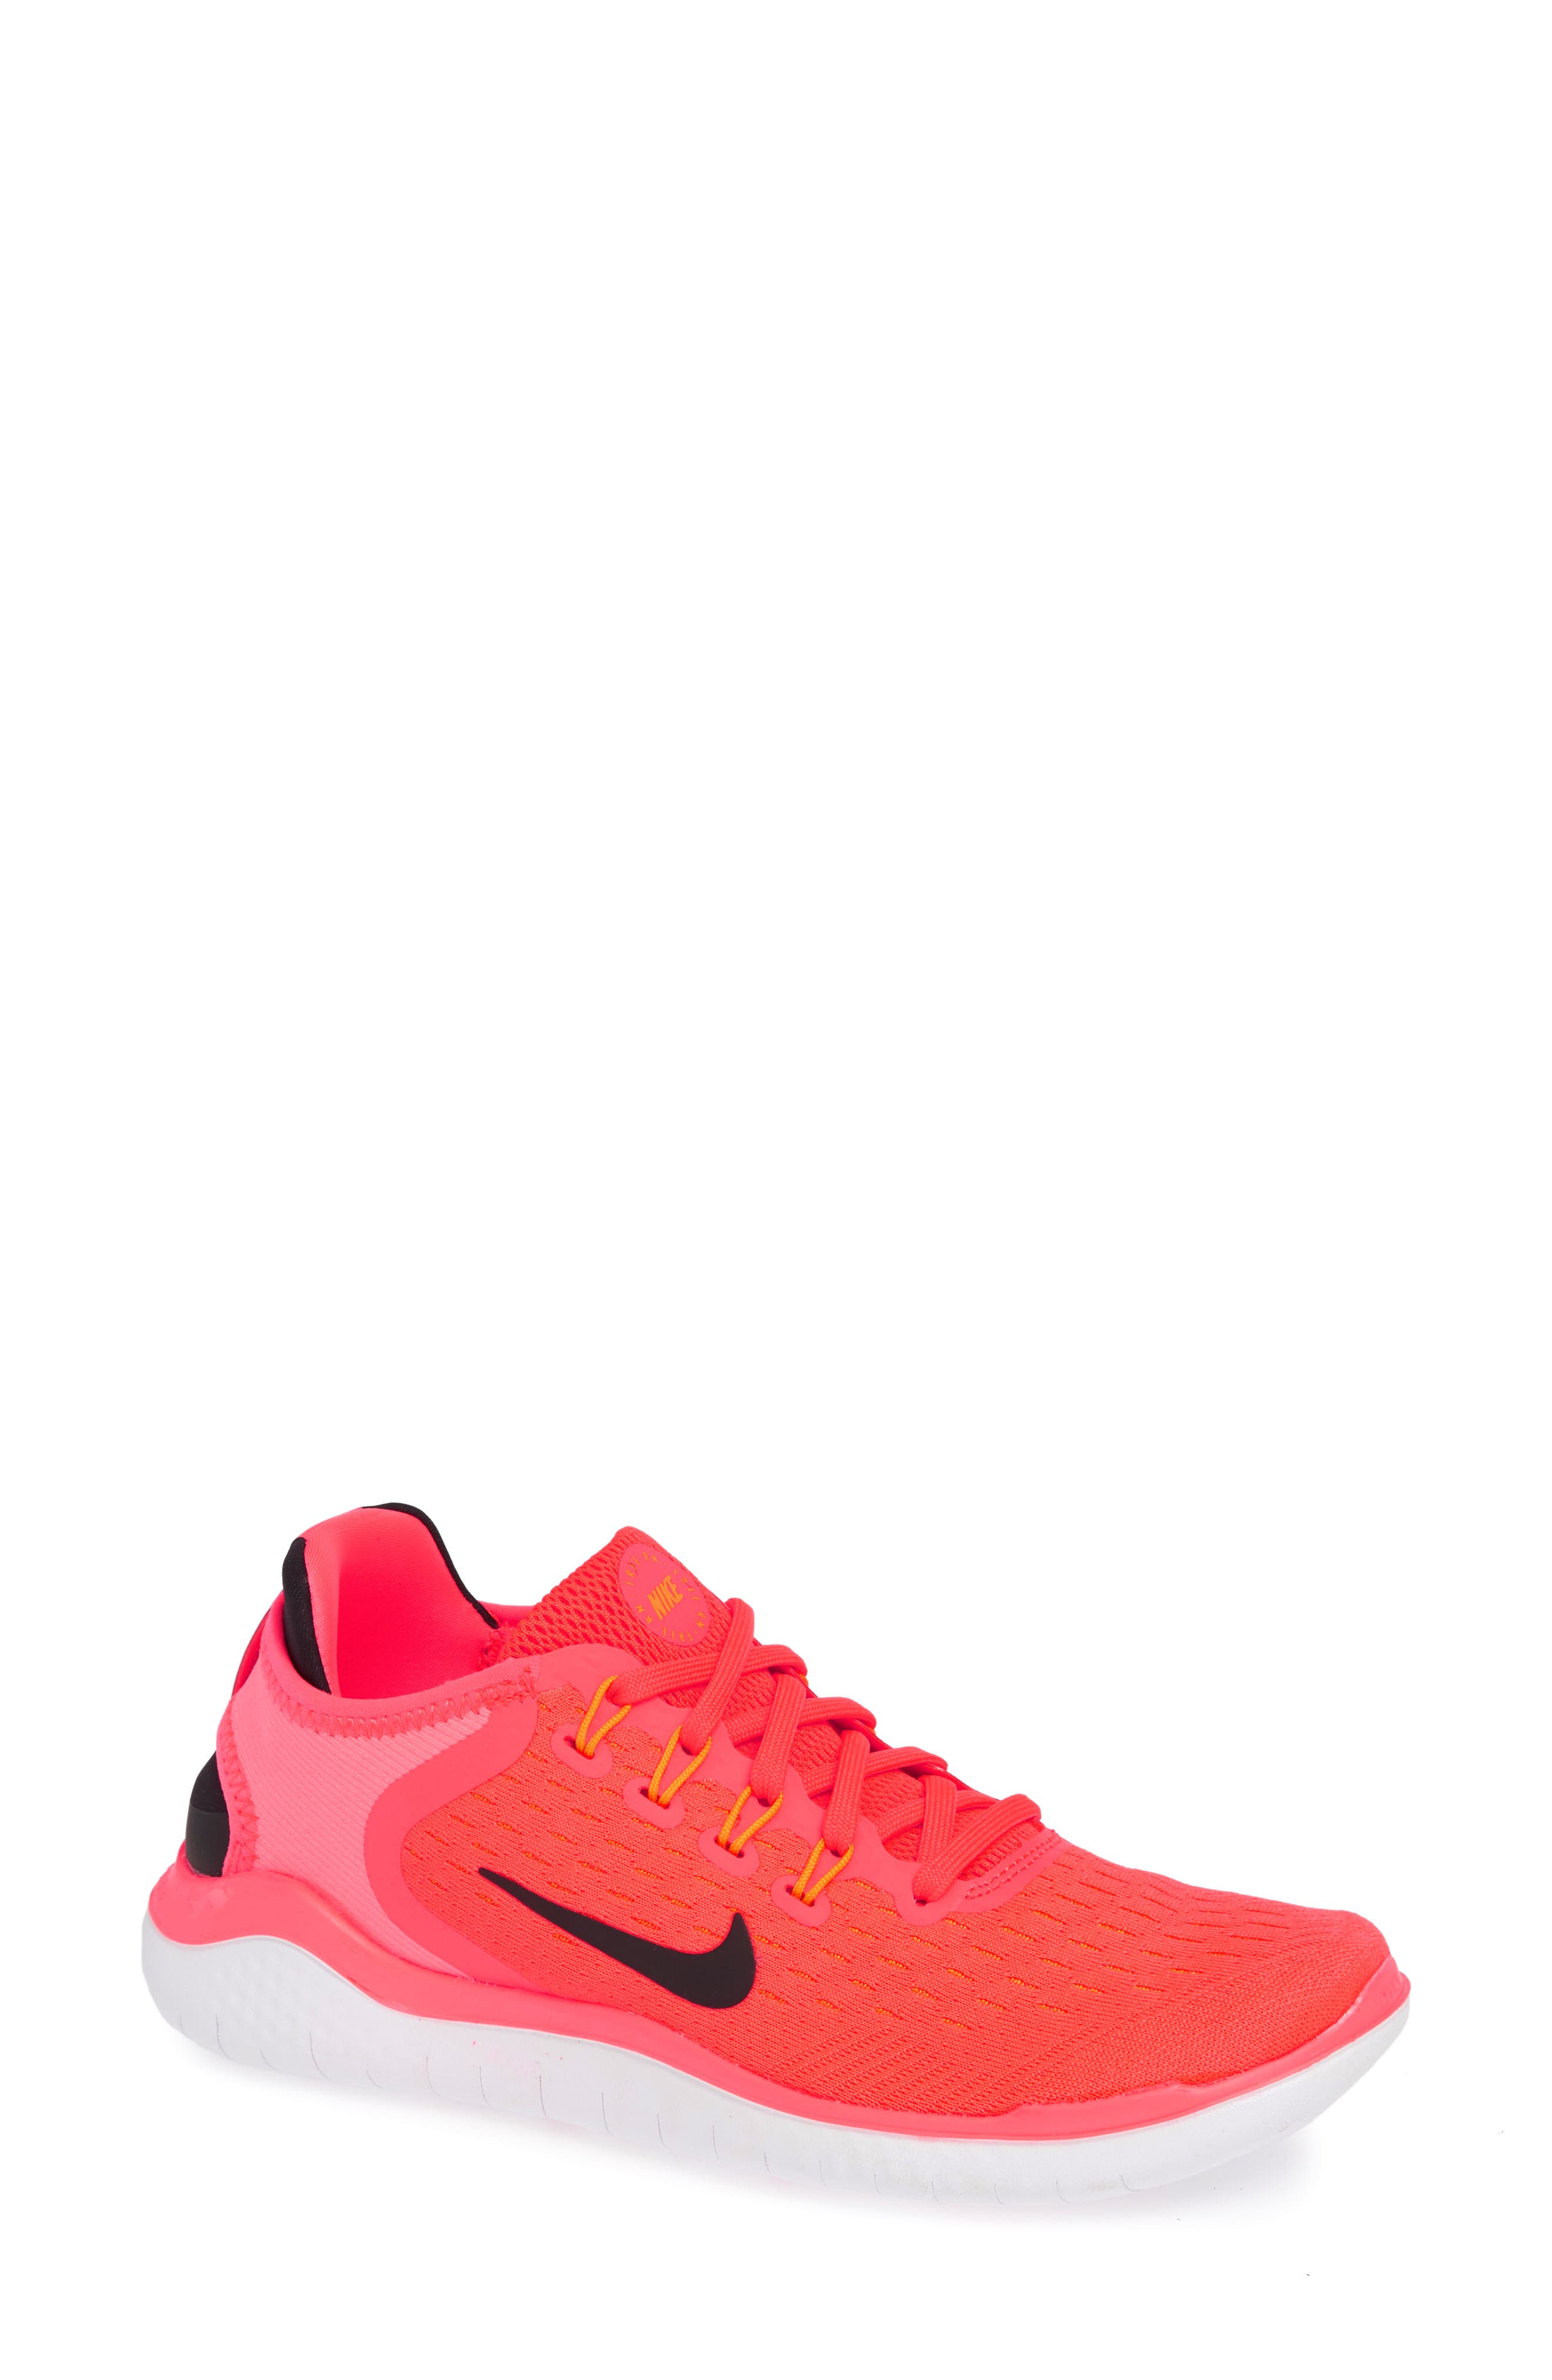 wholesale dealer 63c91 aa53e ... best price nike free rn 2018 running shoe women 9ad95 e7a99